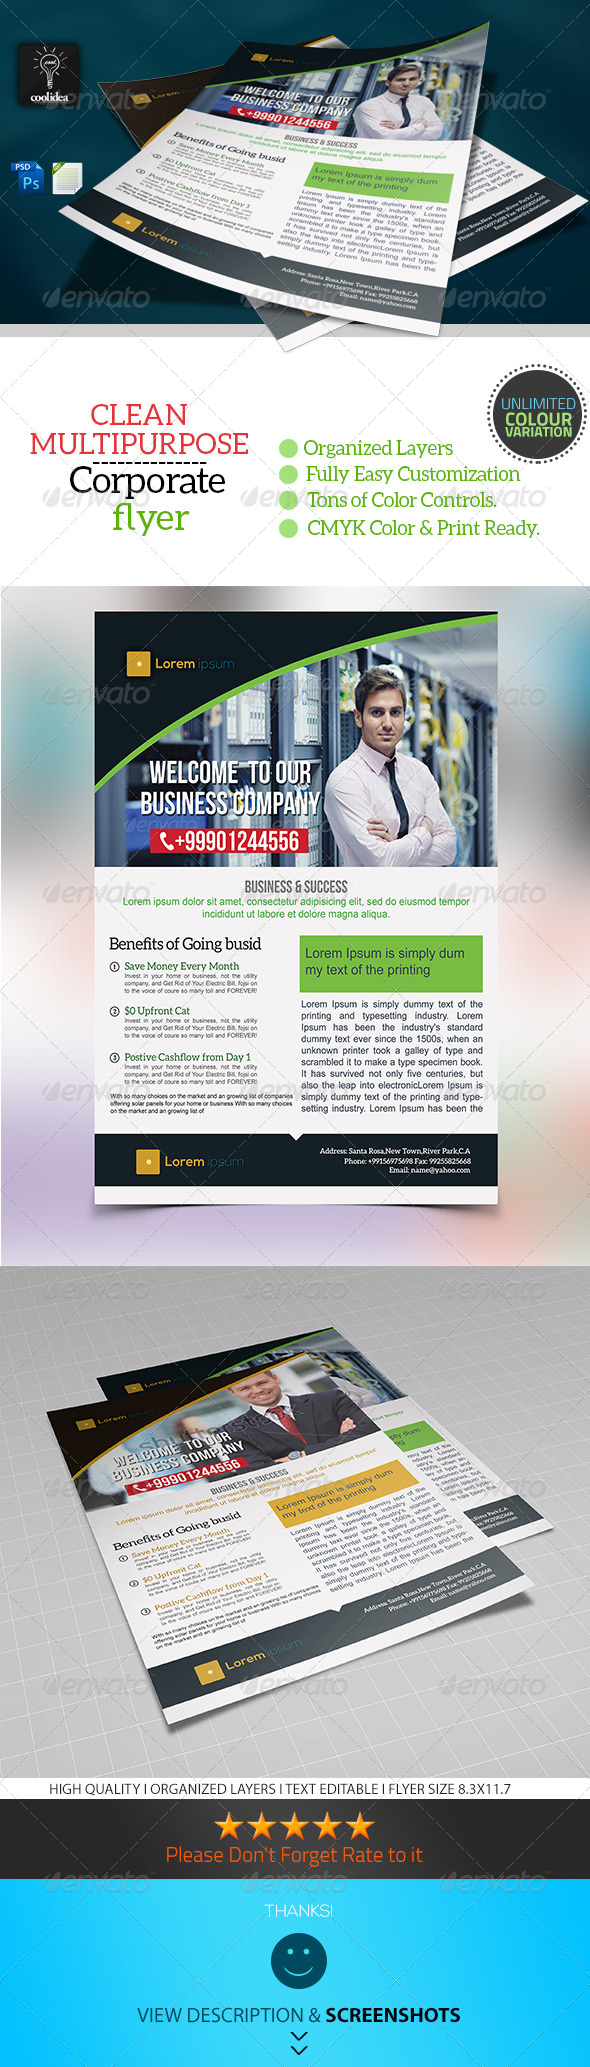 Corporate Flyer Template Business Vol04 - Corporate Flyers